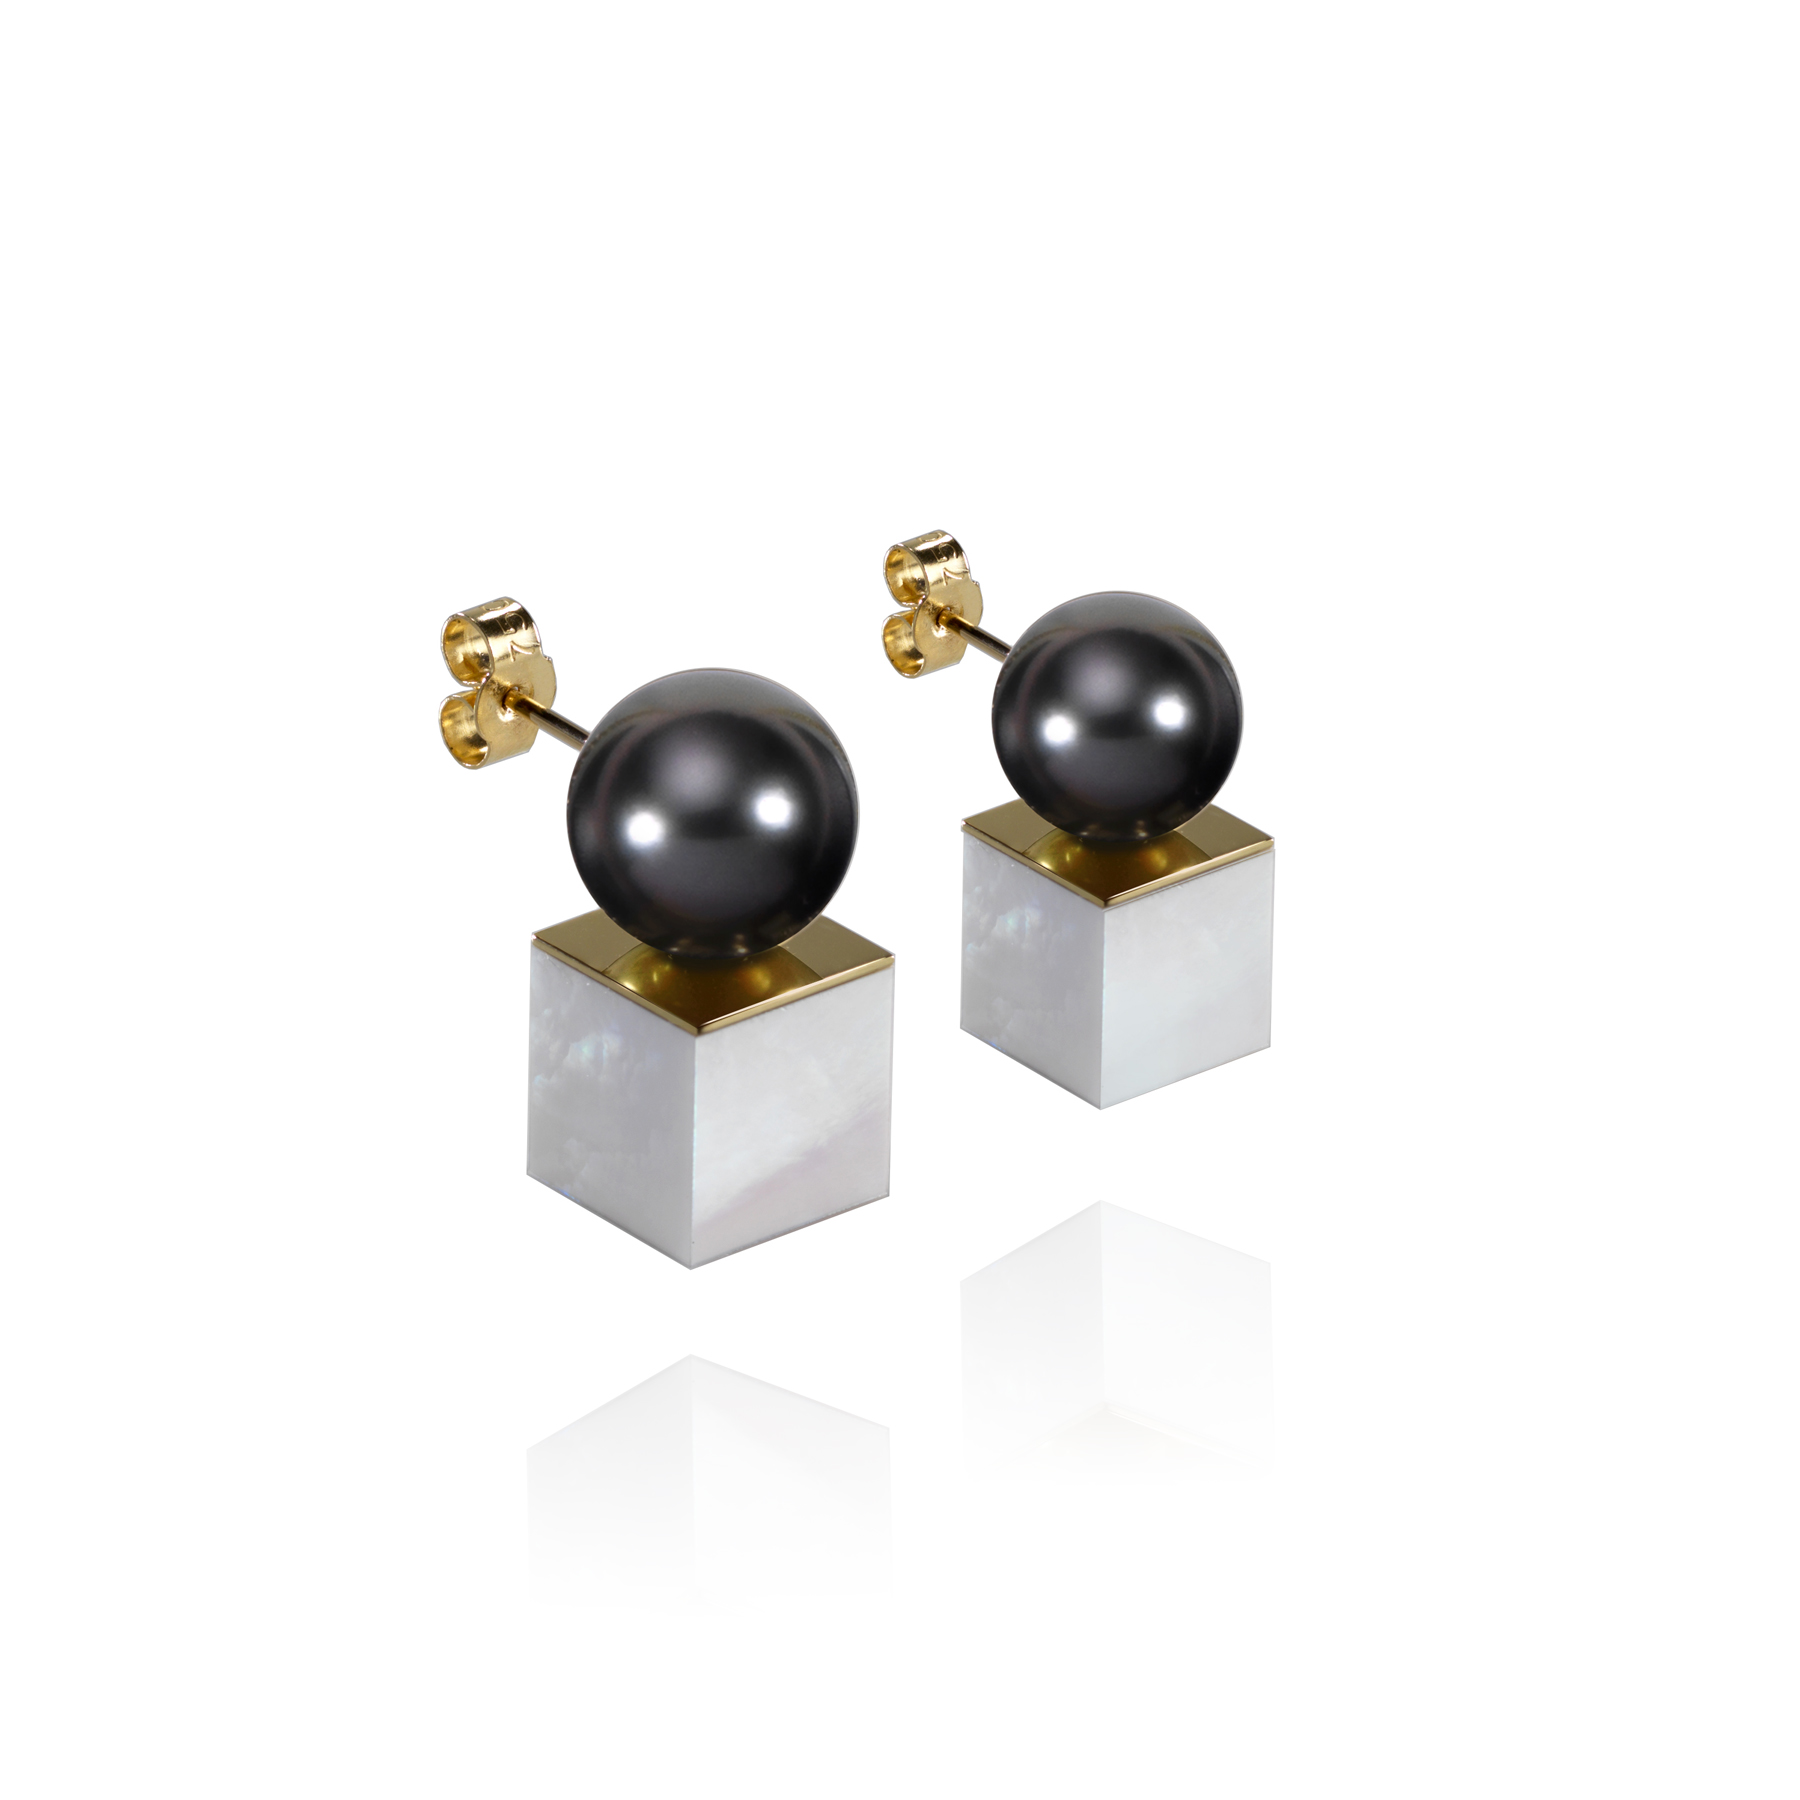 MOP Cube Stud Earrings (Image Courtesy of Melanie Georgacopoulos)